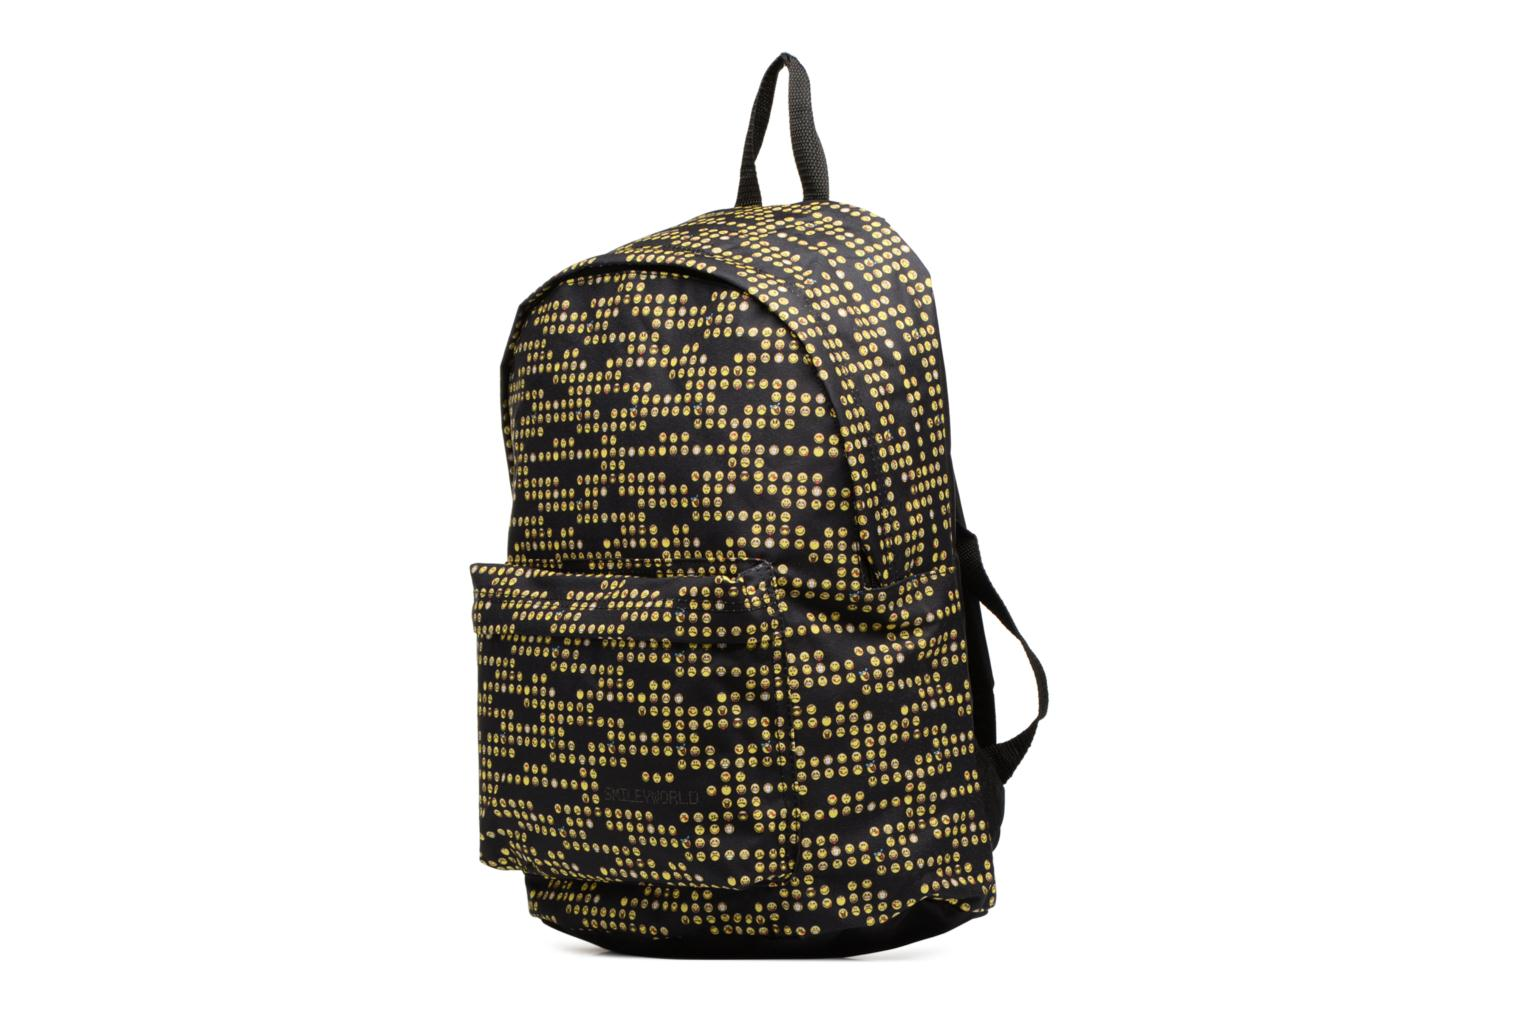 Backpack Smiley Dot Backpack 43cm Smiley Print Dot Smiley 43cm 43cm Smiley Dot Print Print Backpack Backpack xHq0HwBnv